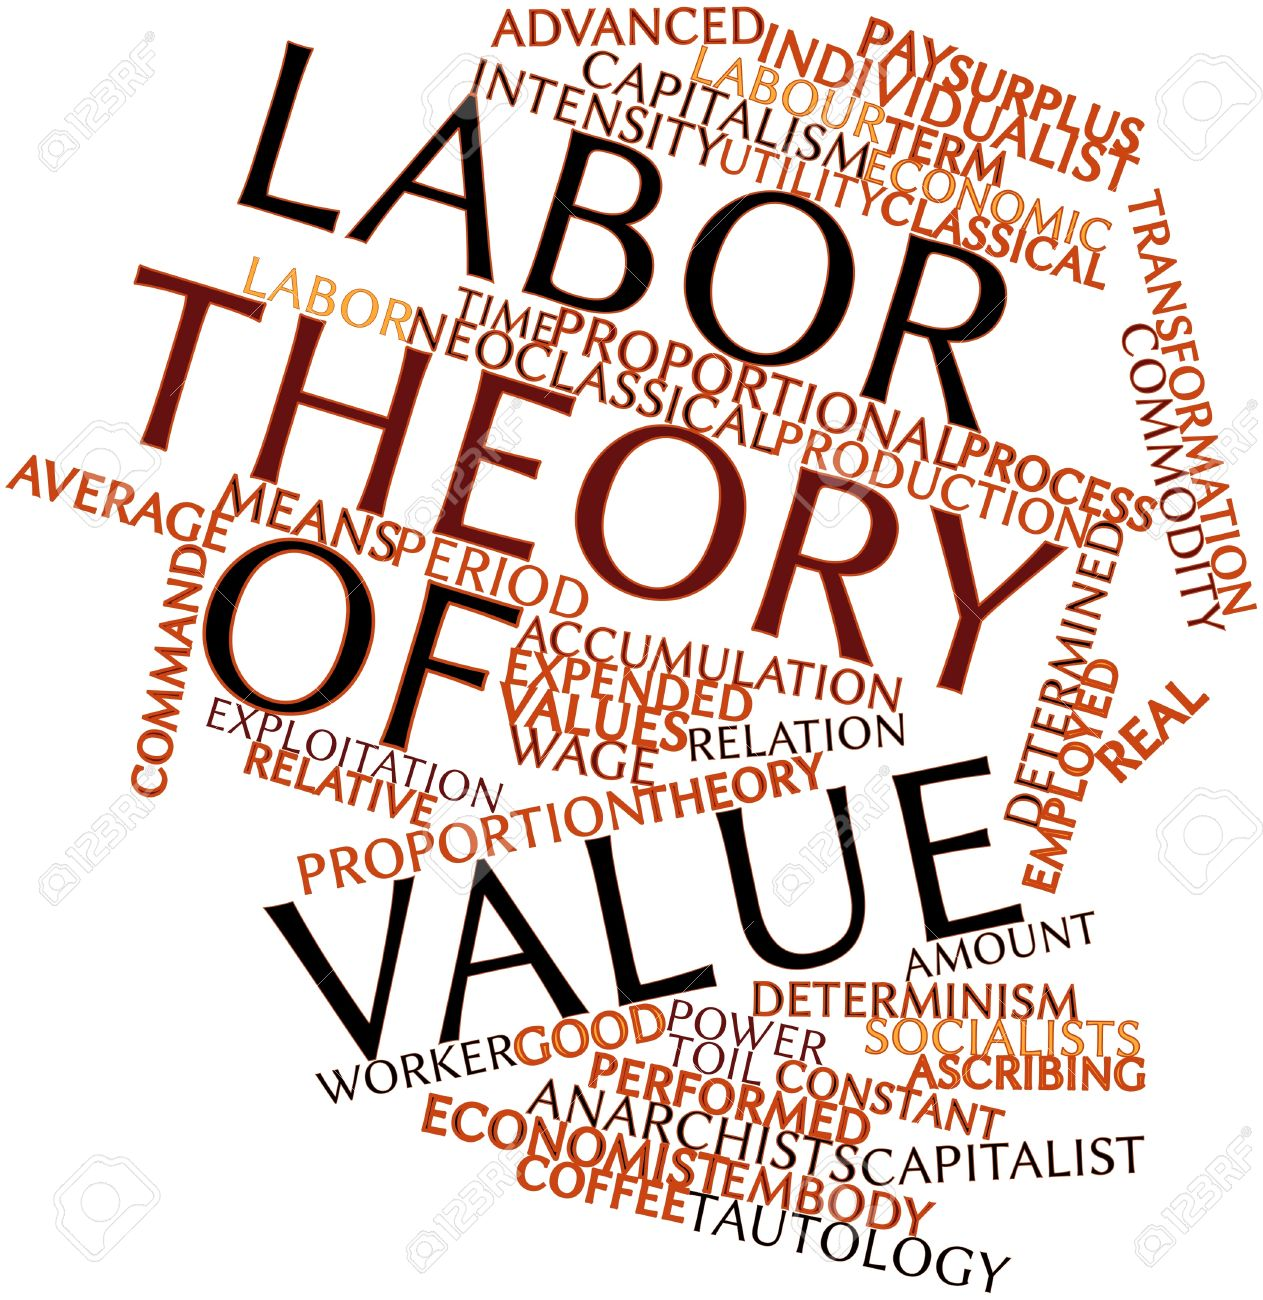 Image result for Labour Theory Of Value